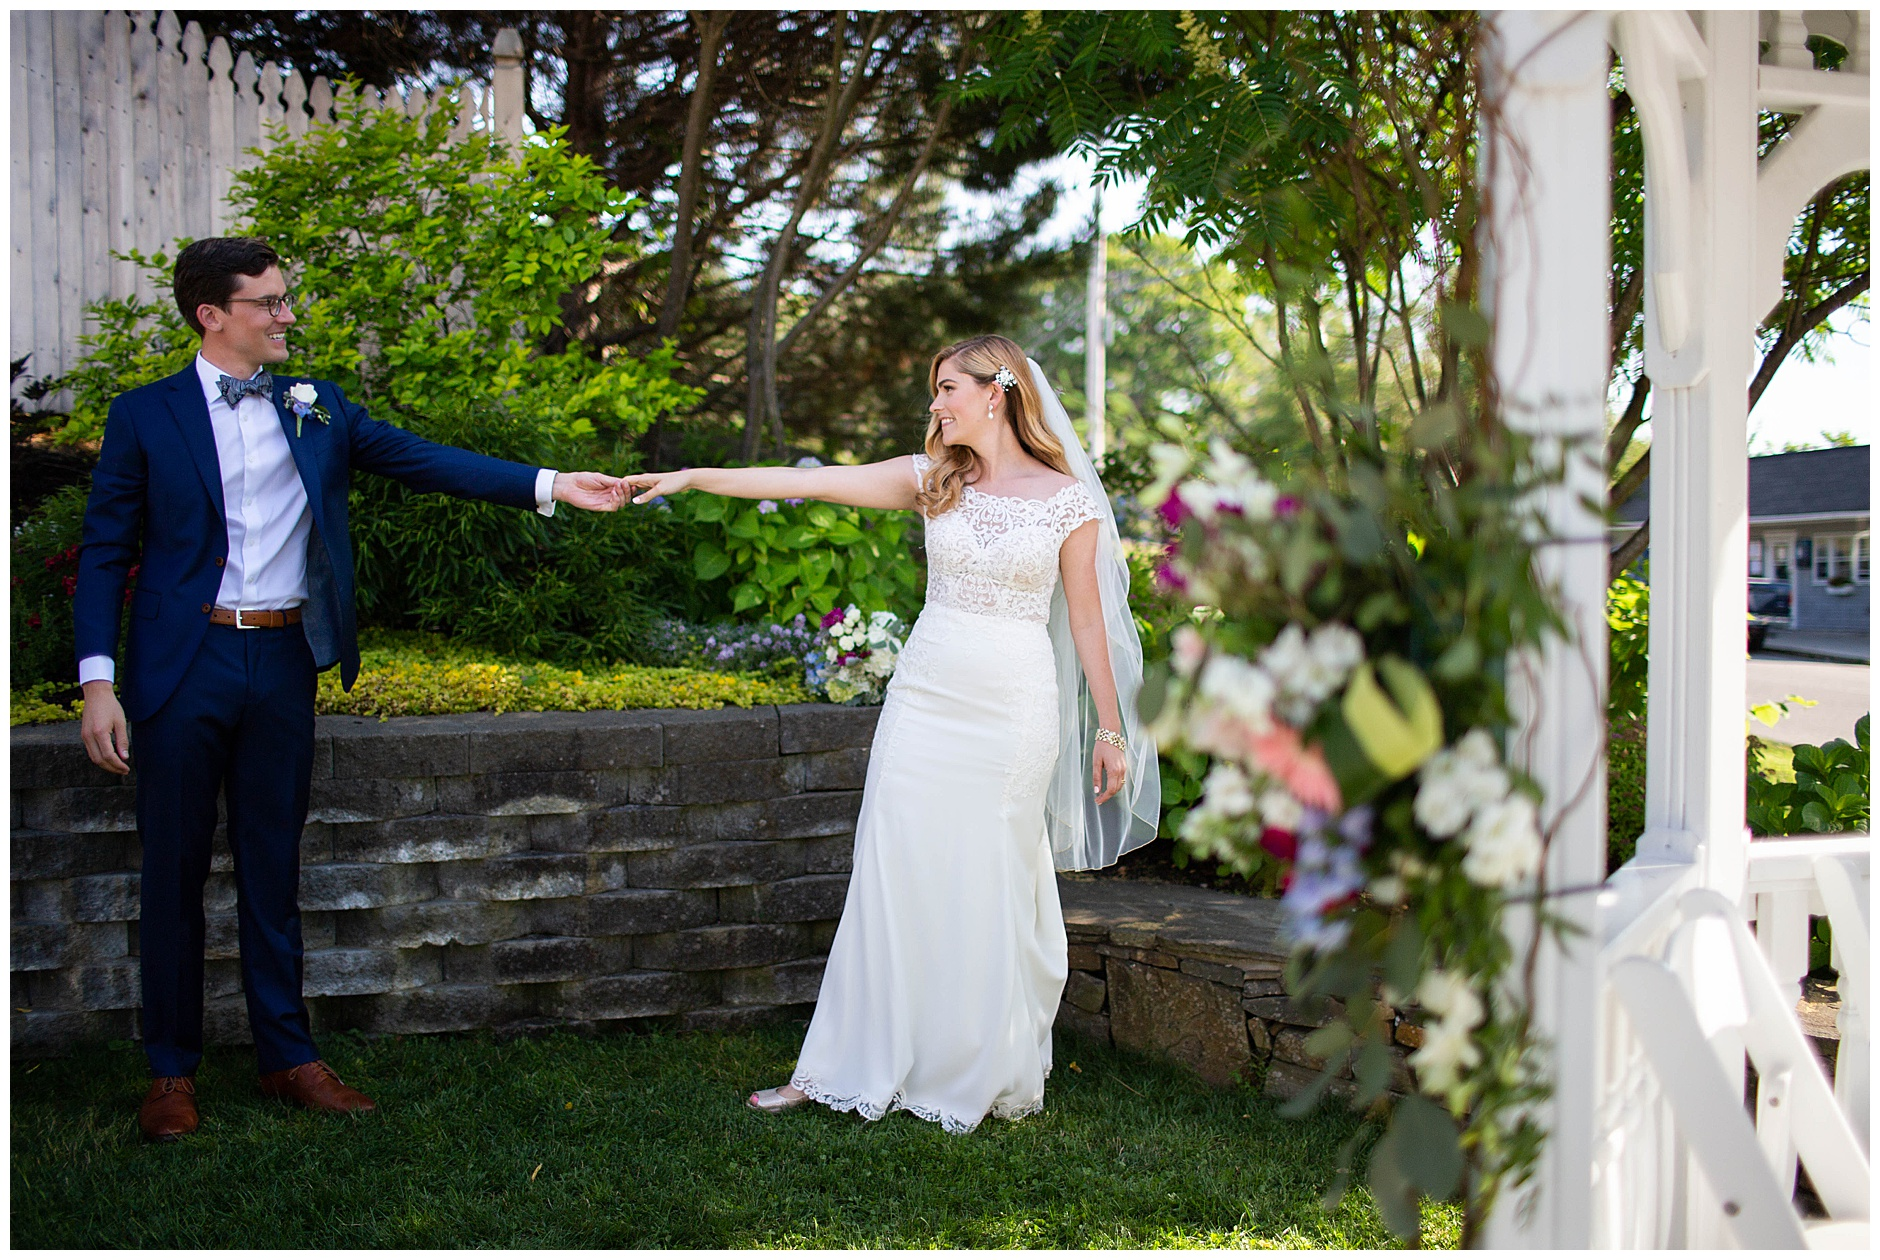 Wedding couple dancing in the garden at Inn on Peaks Island